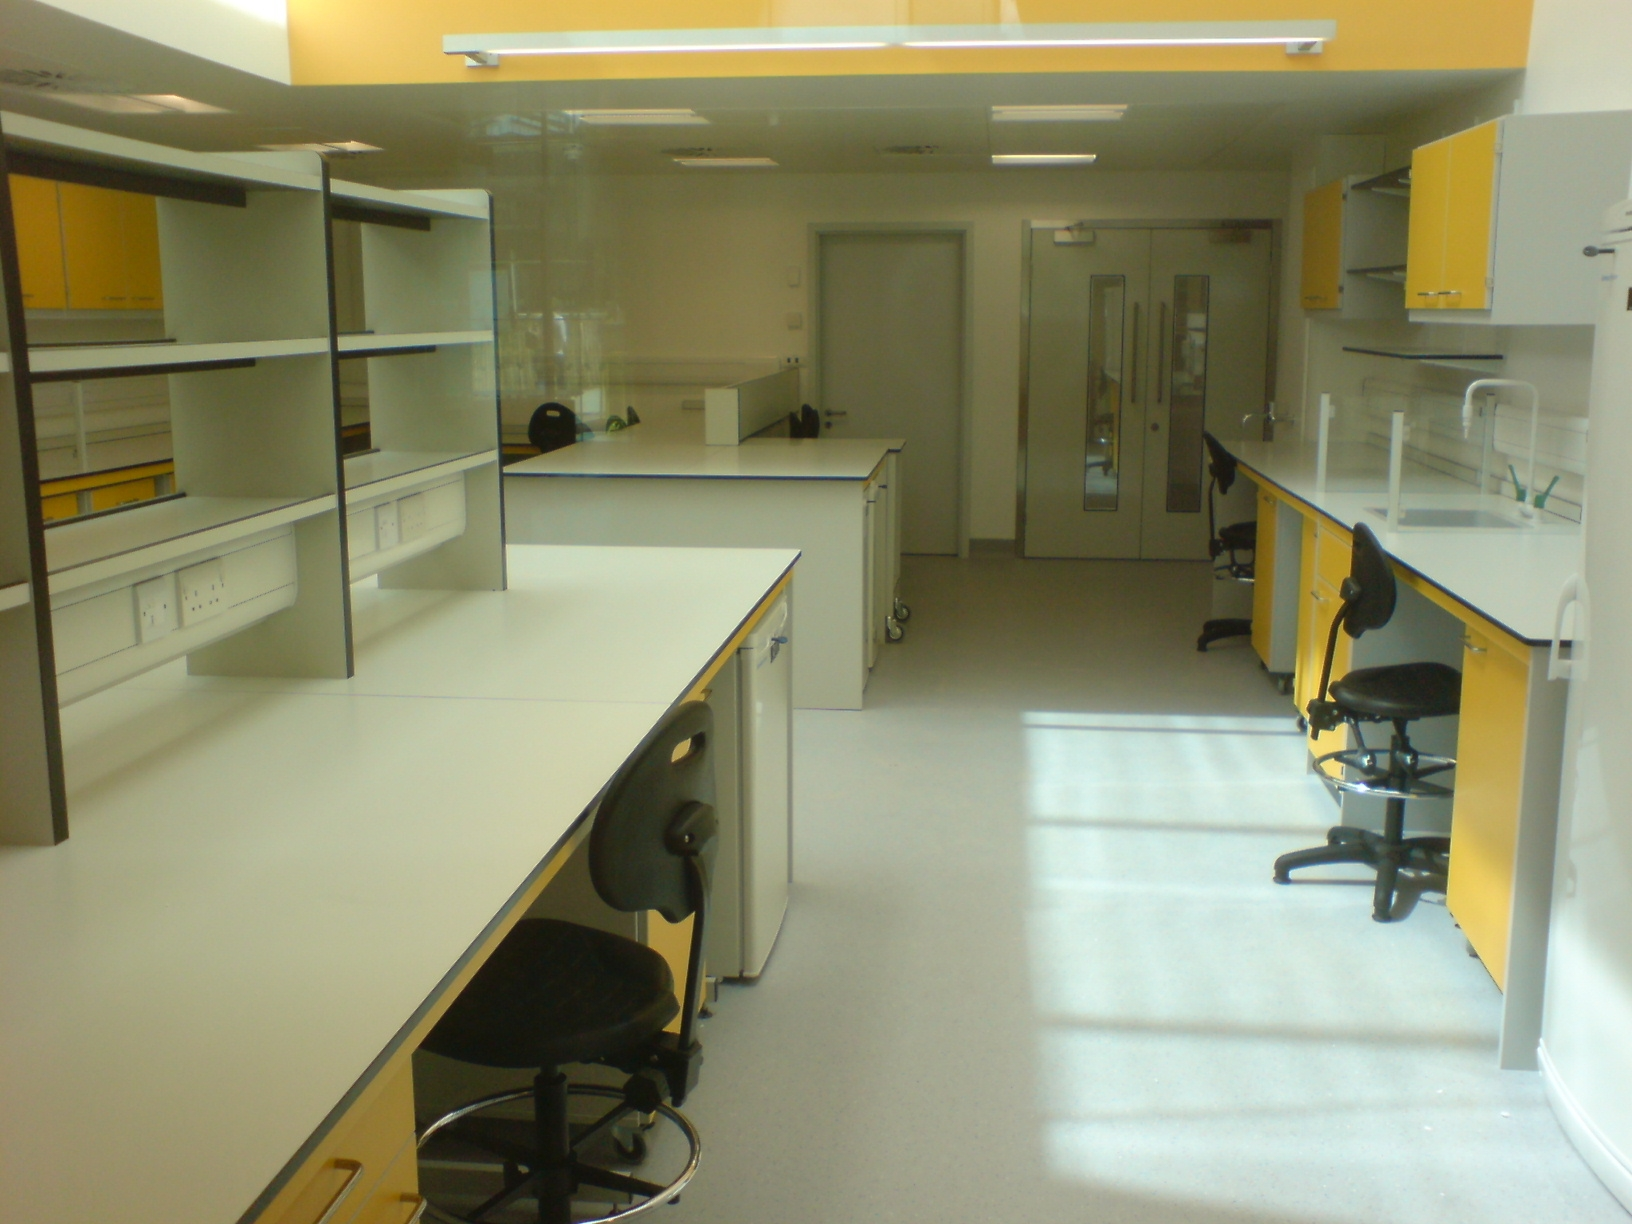 AJT Laboratory Furniture Design School Refurb Trespa Worktops